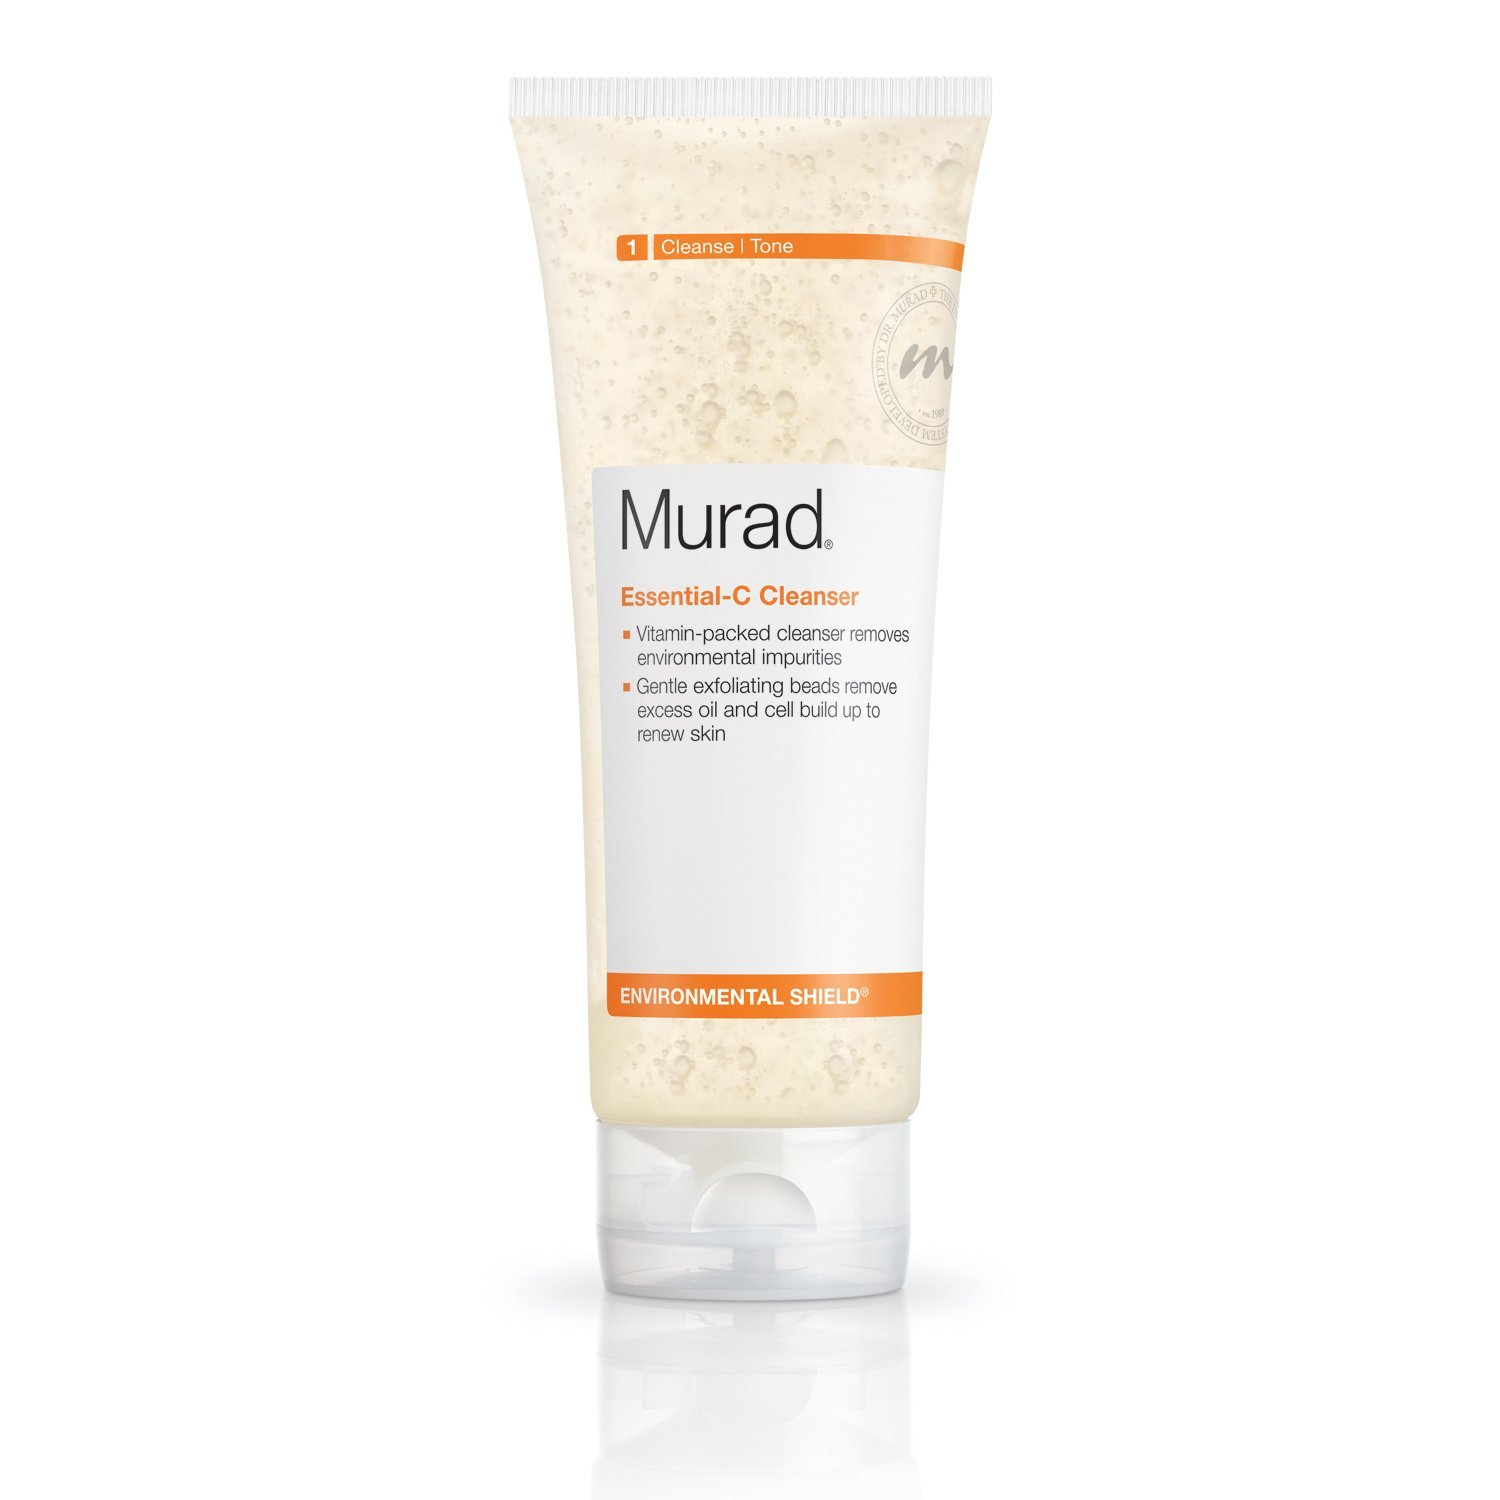 murad-essential-c-cleanser